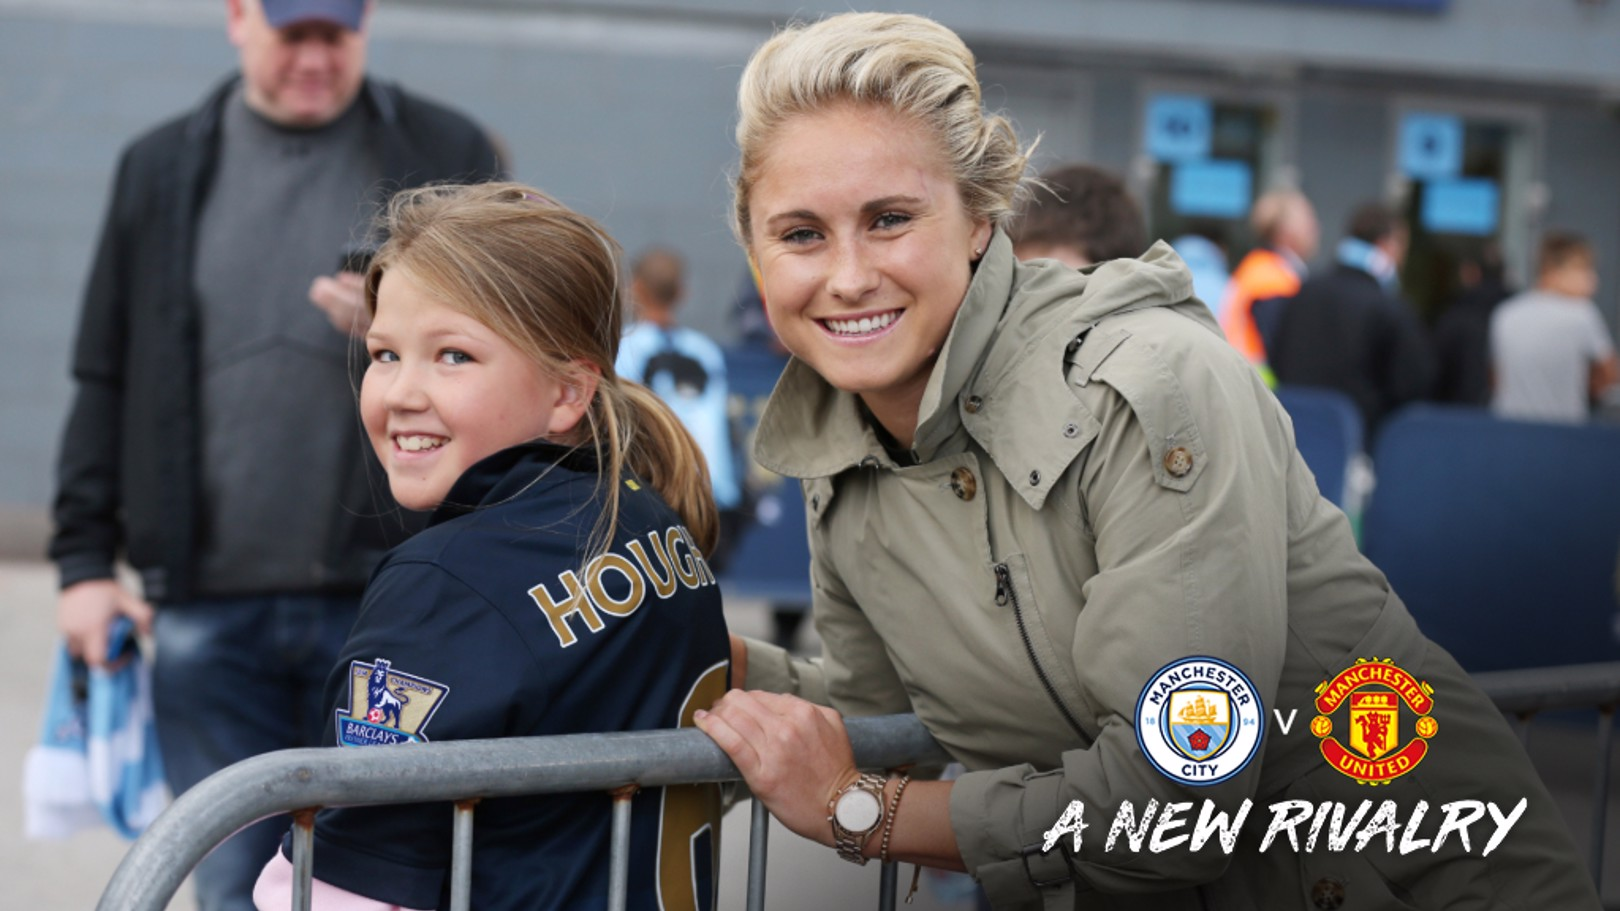 MEET YOUR HEROES: Fans are invited to meet the players after Saturday's Manchester Derby